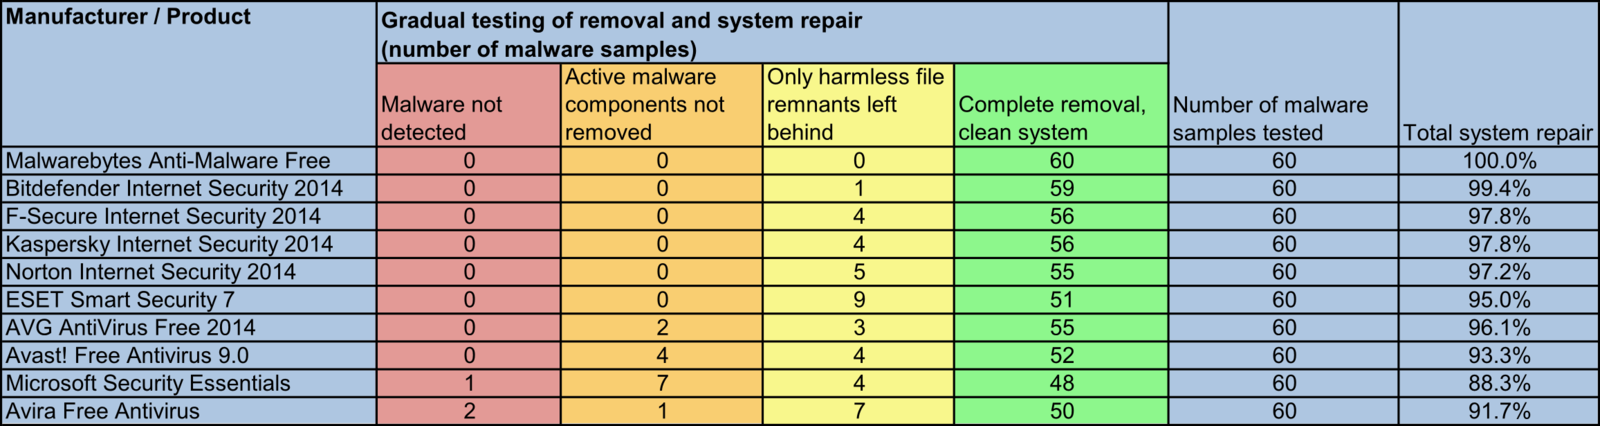 17 software packages in a repair performance test after